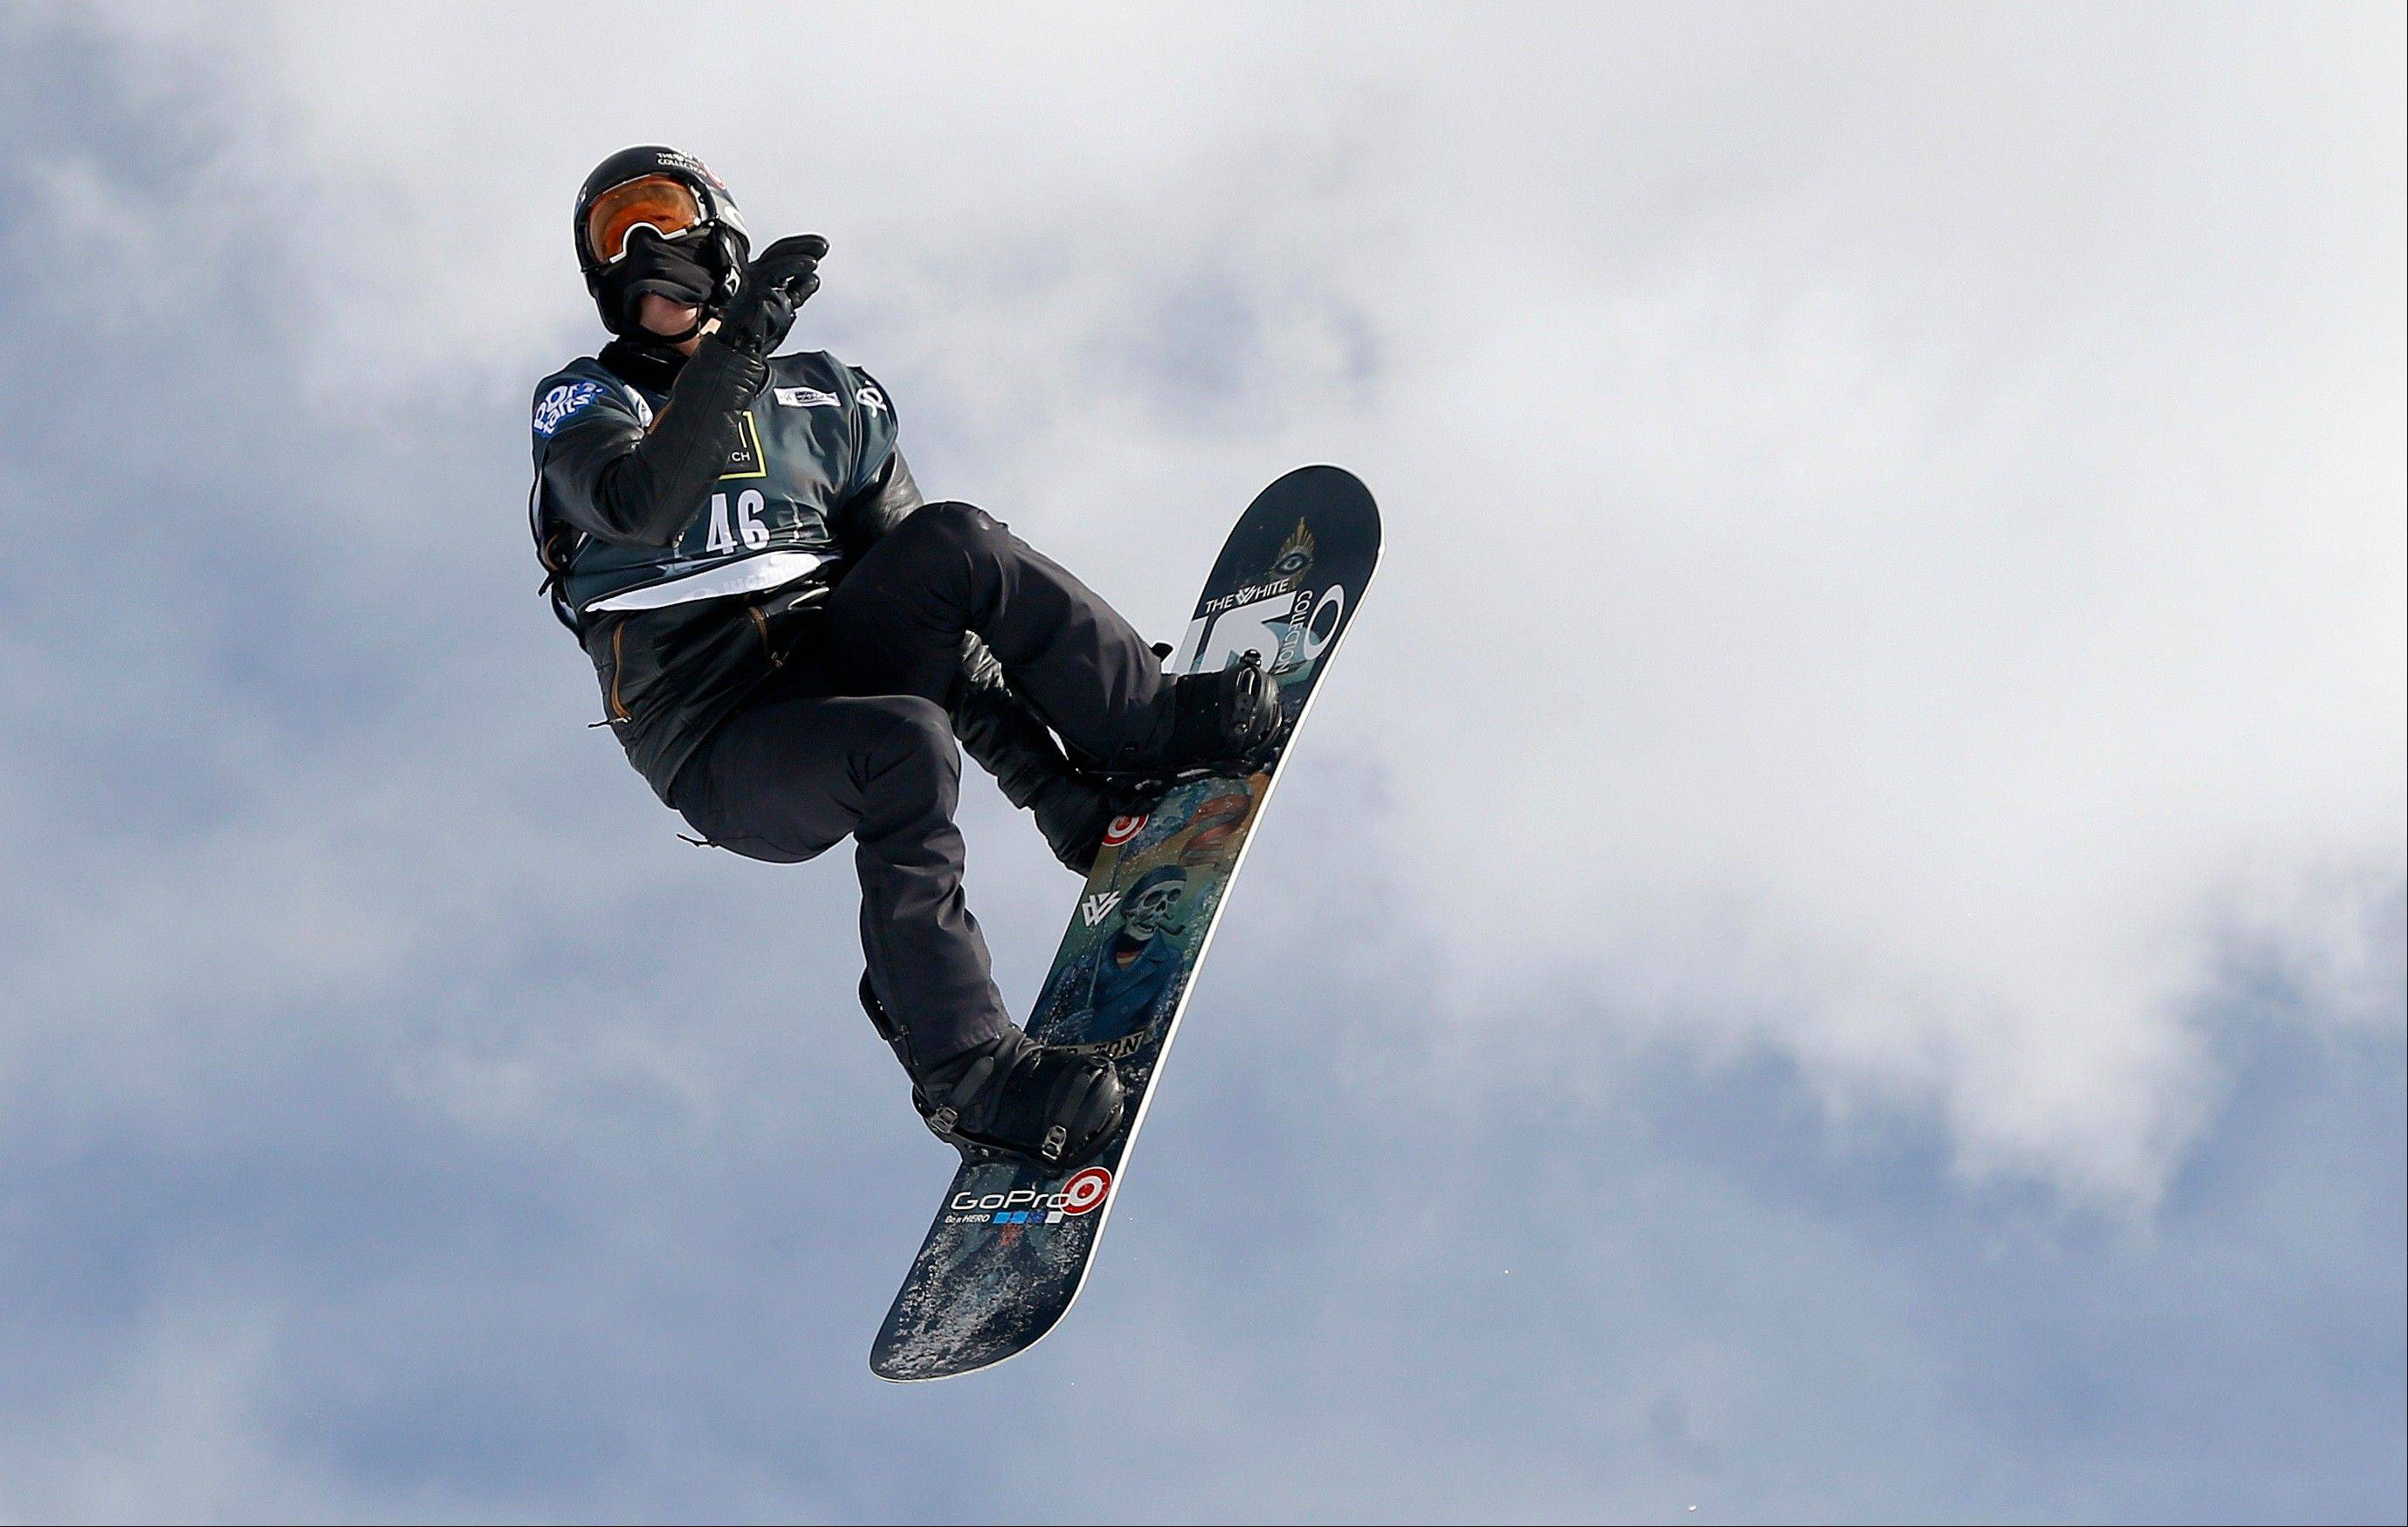 Shaun White flies off a jump during the World Cup U.S. Grand Prix snowboarding qualifications Dec. 19 in Frisco, Colo.